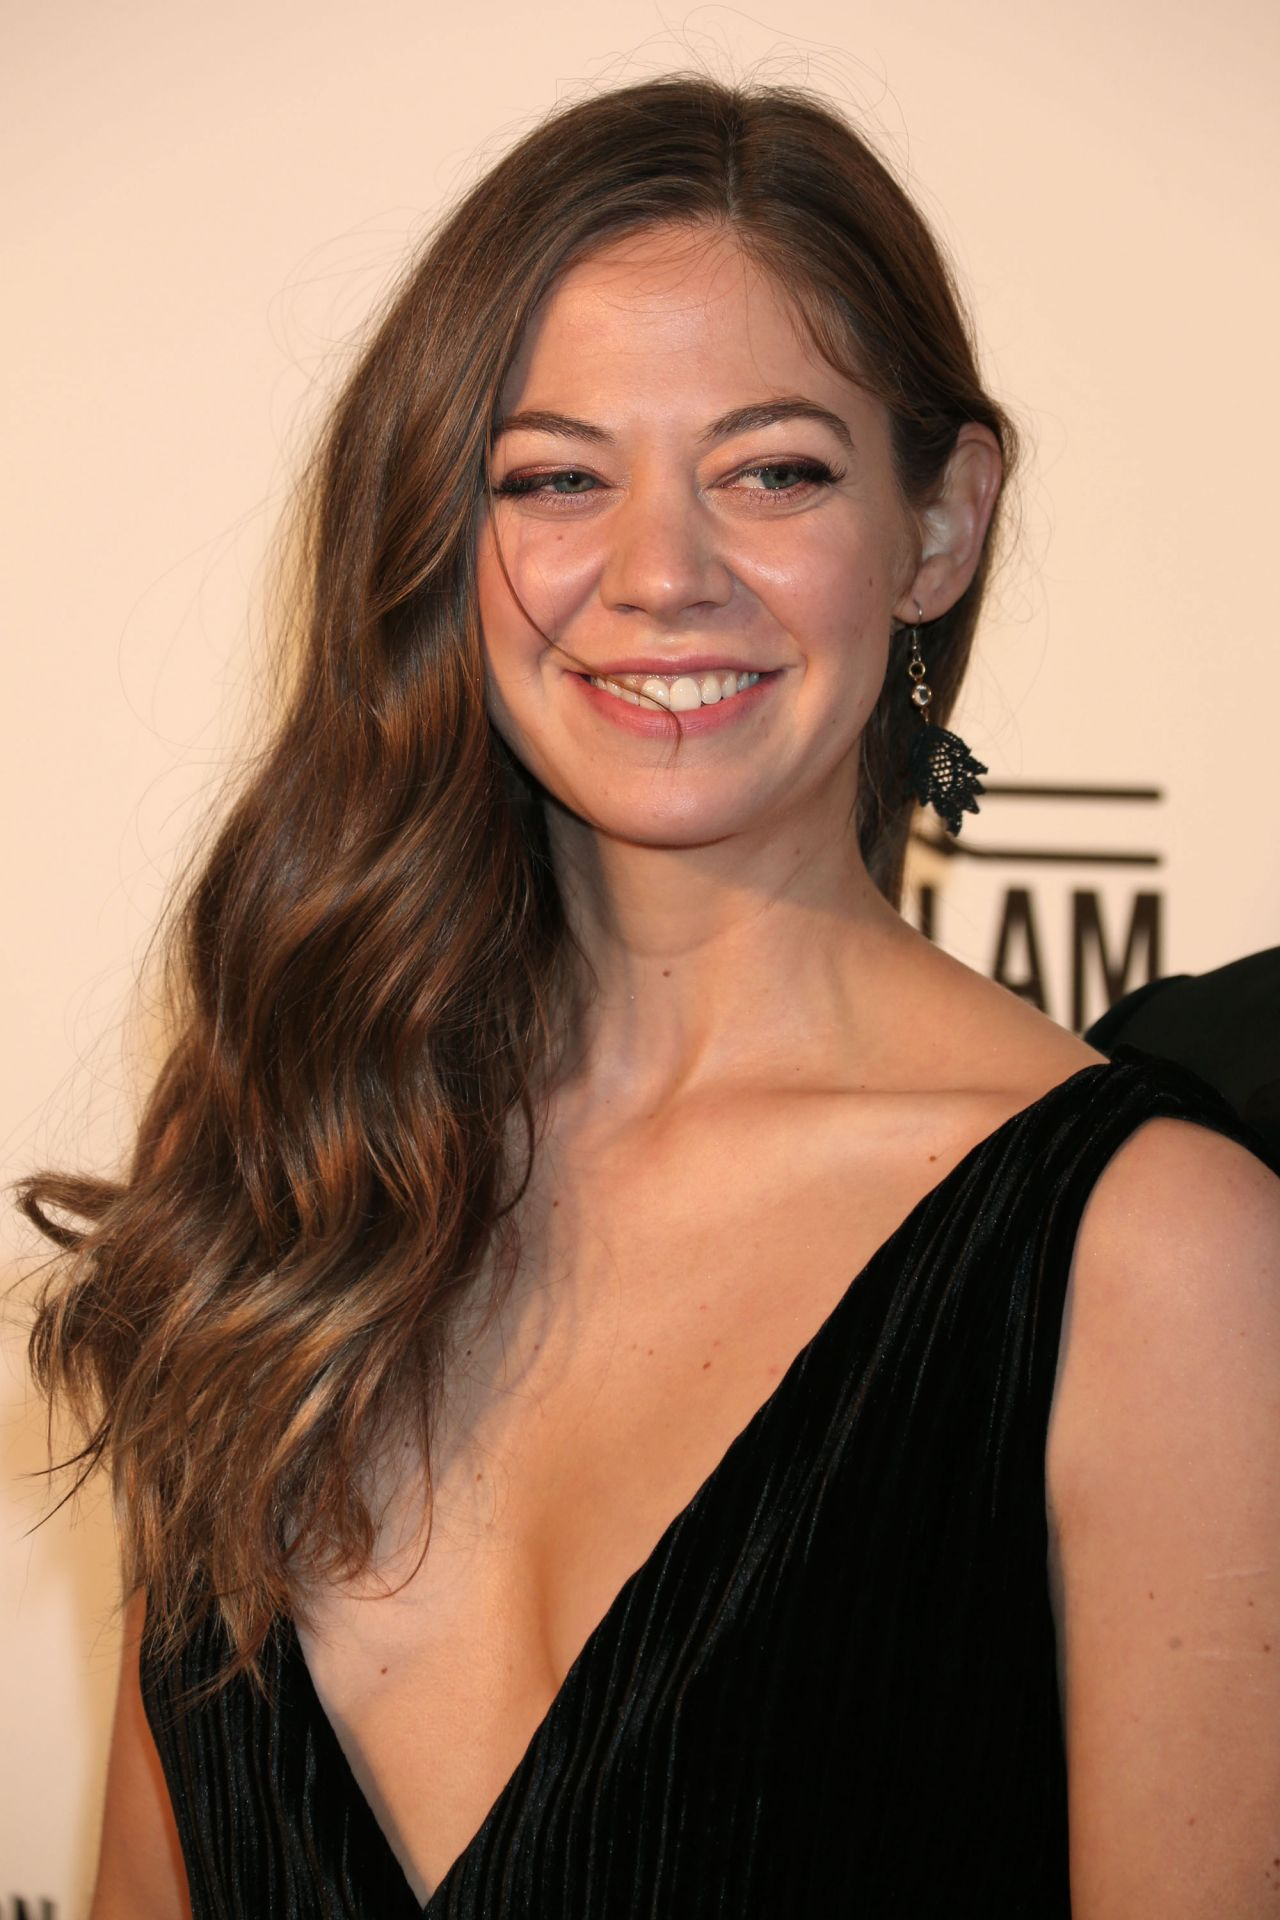 Fotos Analeigh Tipton nudes (18 photos), Ass, Sideboobs, Instagram, see through 2006